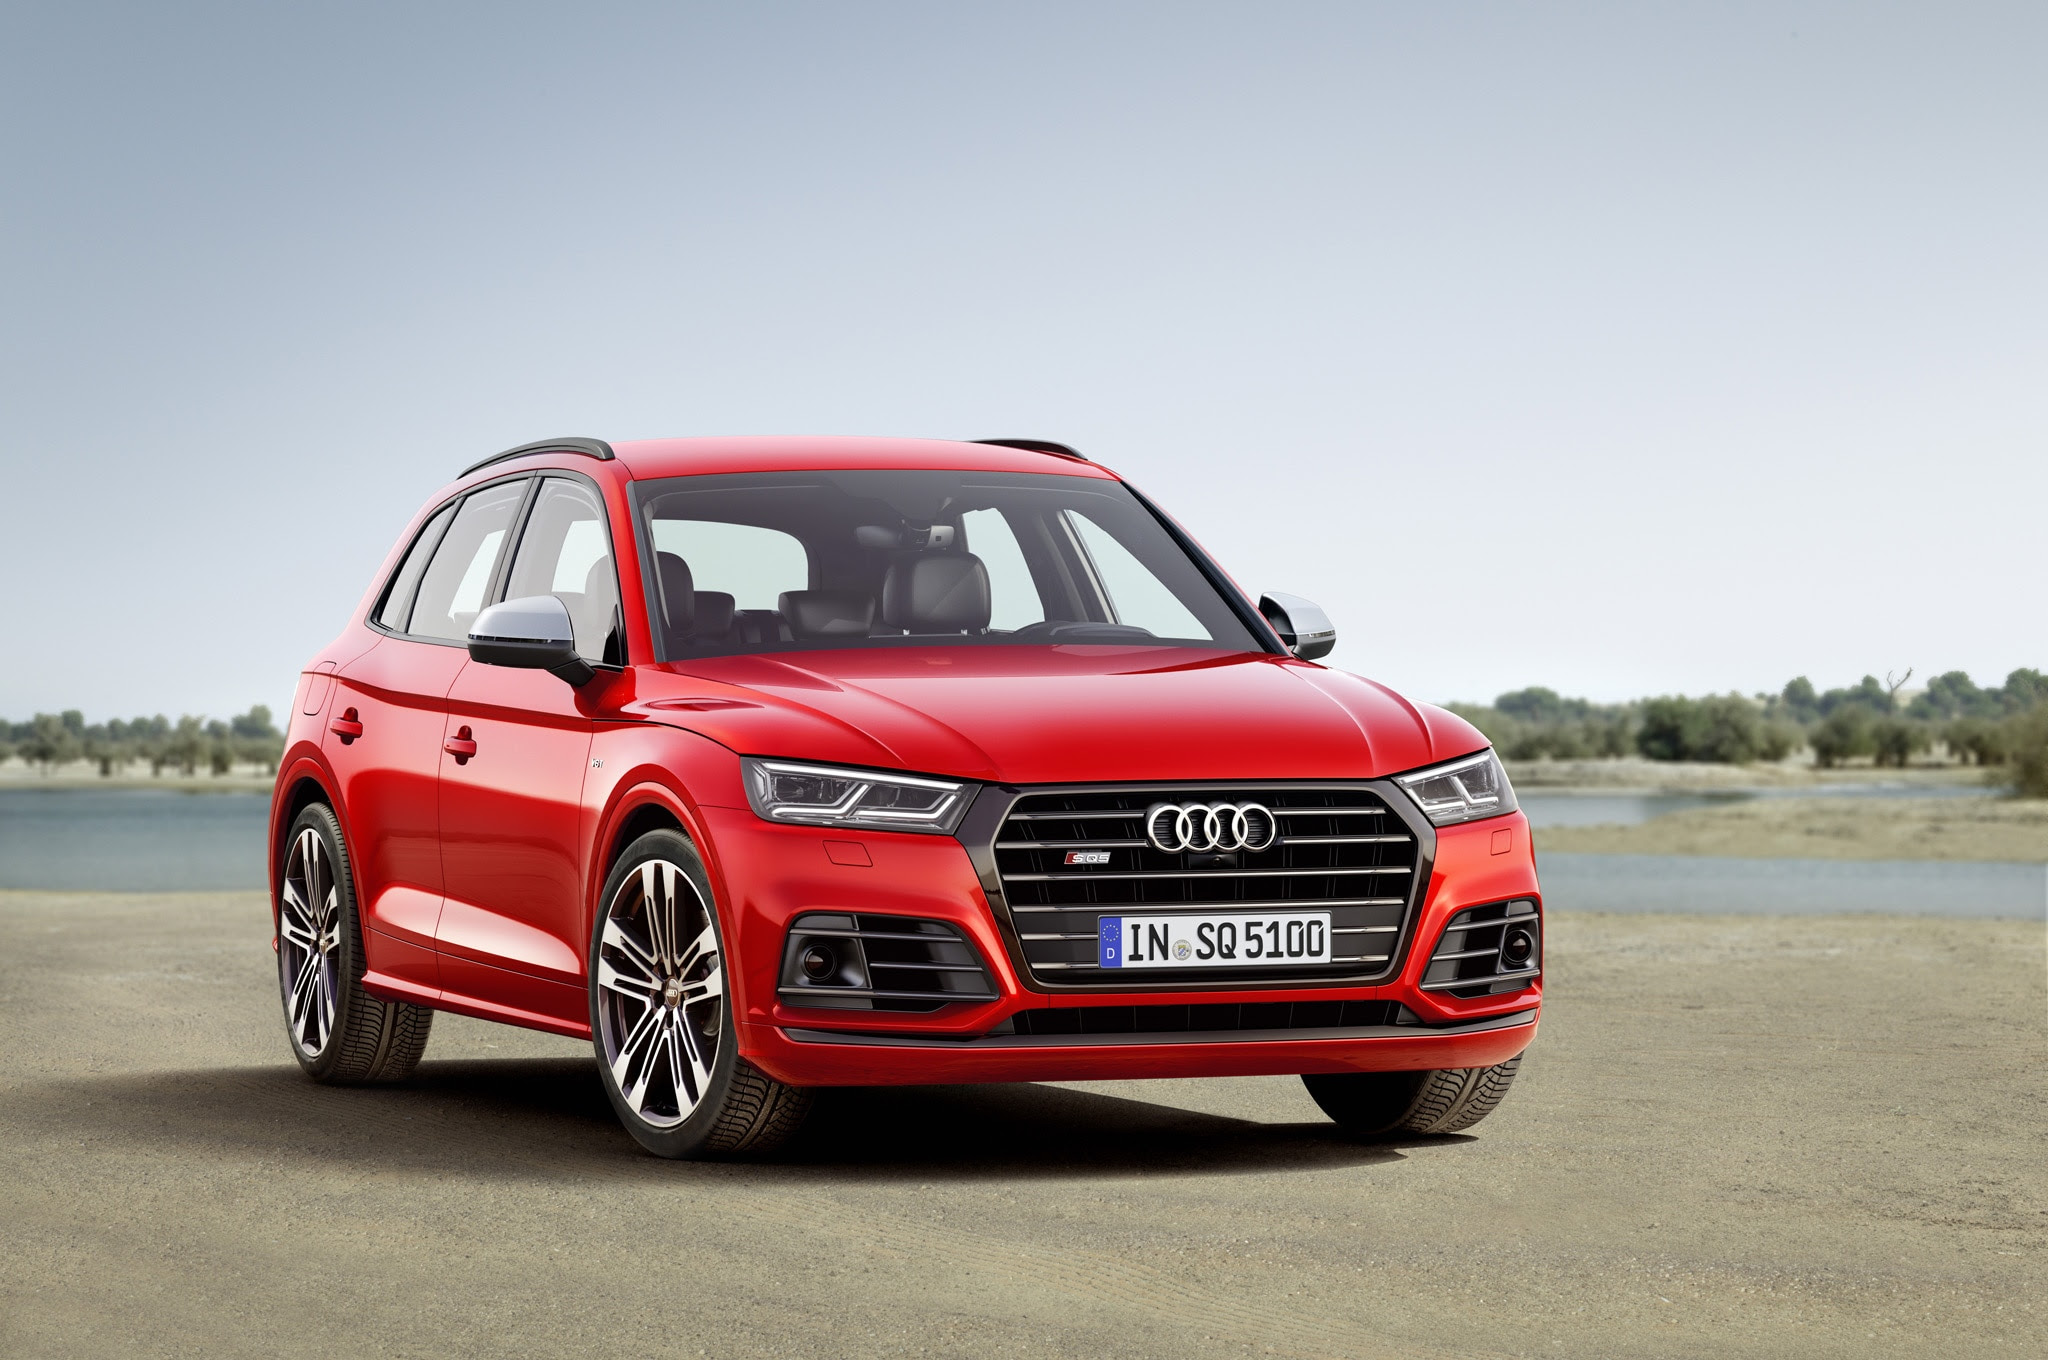 First Look: 2018 Audi SQ5 | Automobile Magazine